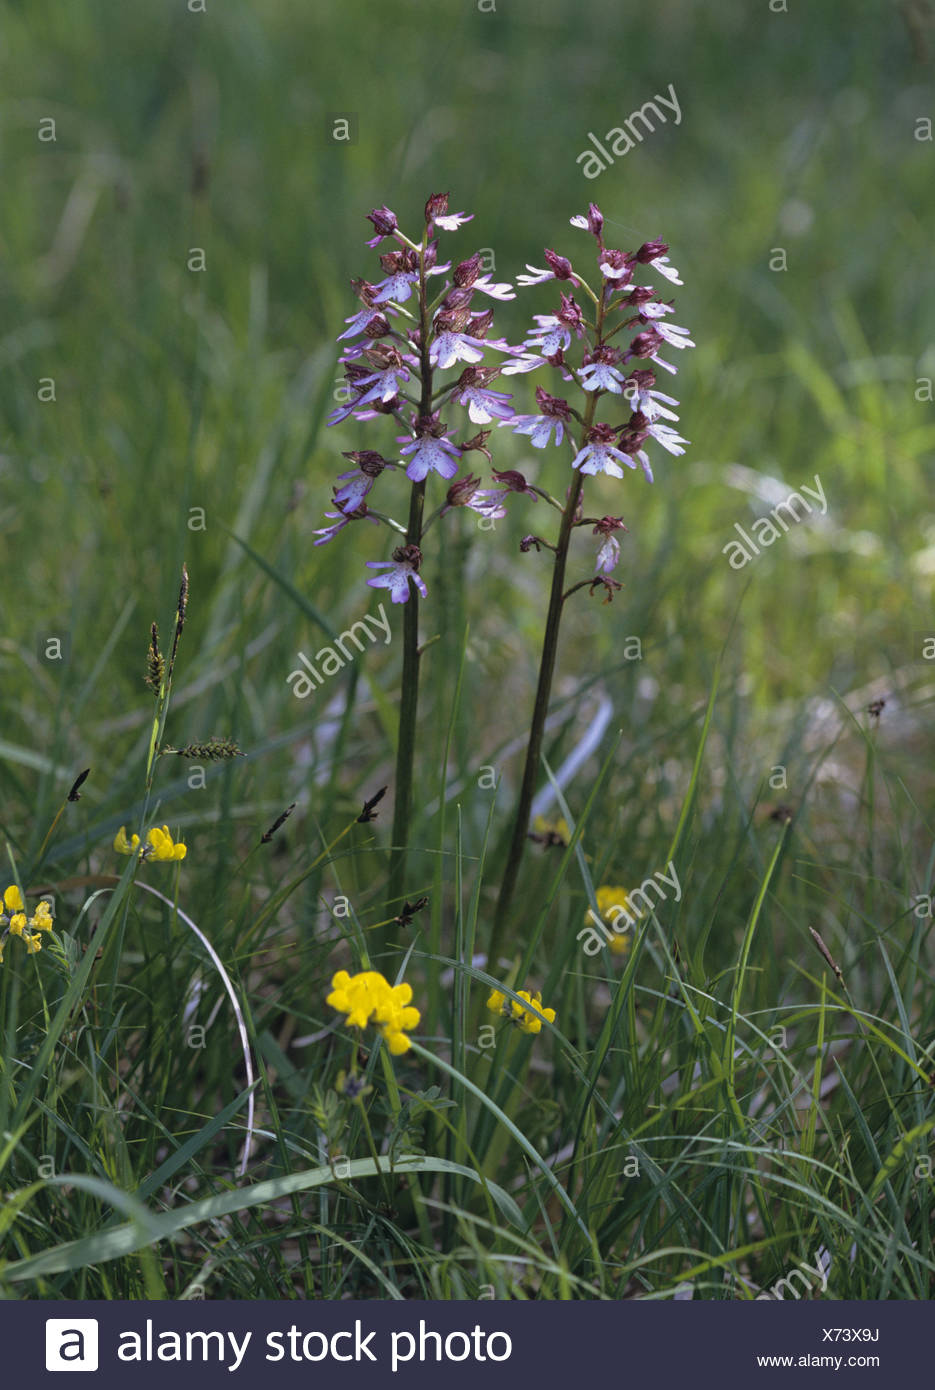 Meadow, magenta orchis, Orchis purpurea, detail, blossoms, plant, flower, orchid, orchis, blossom, period bloom, nature, botany, wild plant, - Stock Image